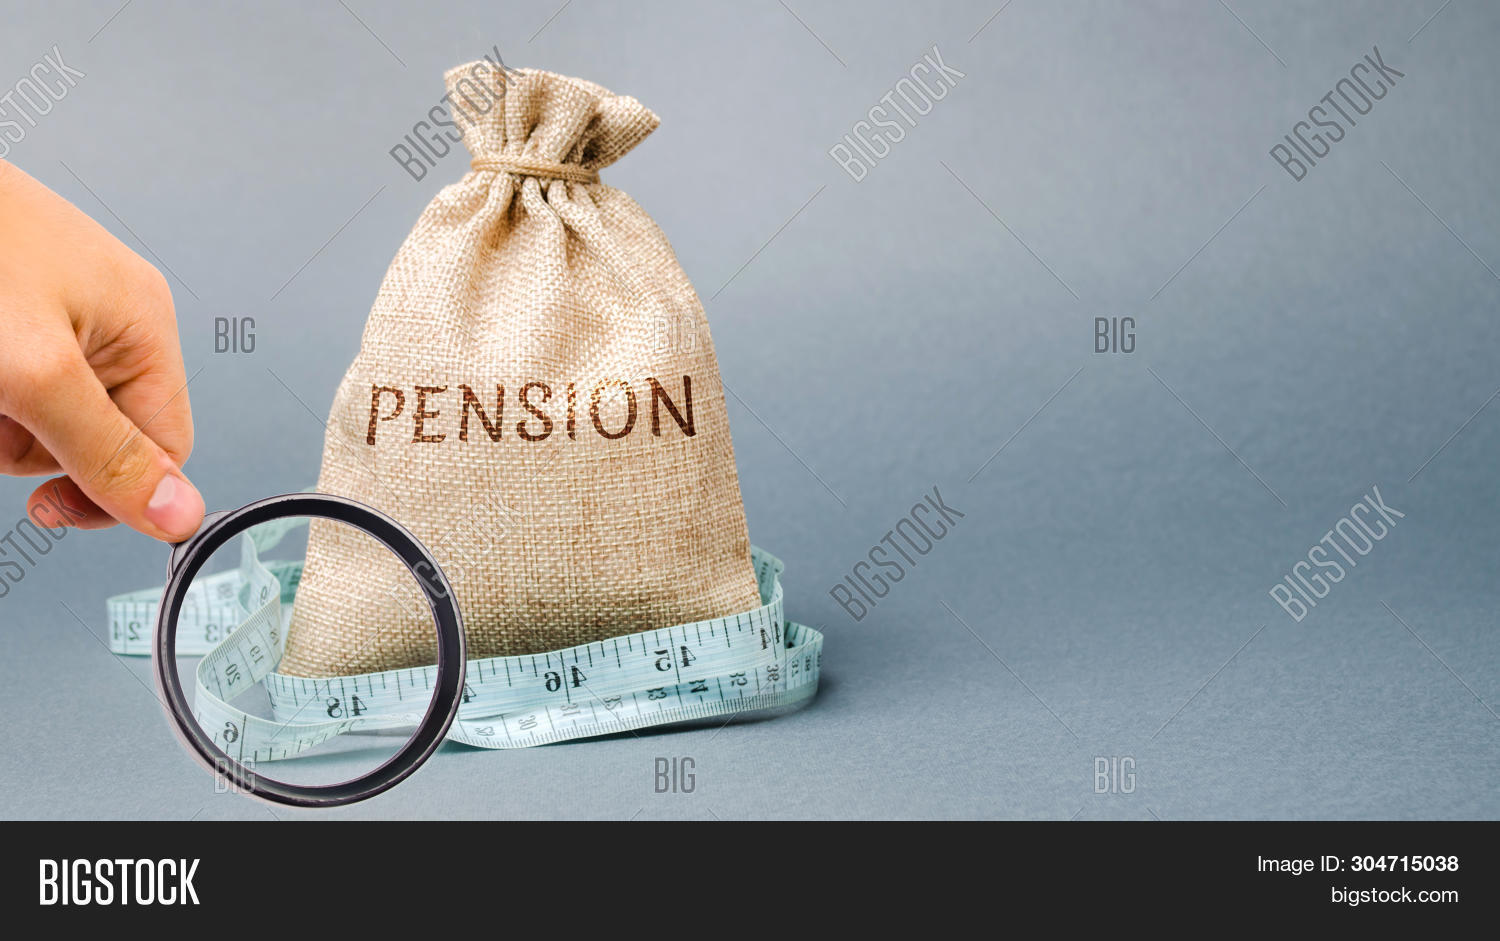 age,bag,banking,budget,business,cash,coins,concept,currency,fall,finance,financial,financing,fund,future,income,insurance,invest,investment,lack,life,limited,low,measure,minimal,money,old,payments,pension,pensioner,planning,poverty,reduction,report,retire,retired,retirees,retirement,save,savings,size,space,state,tape,text,wealth,word